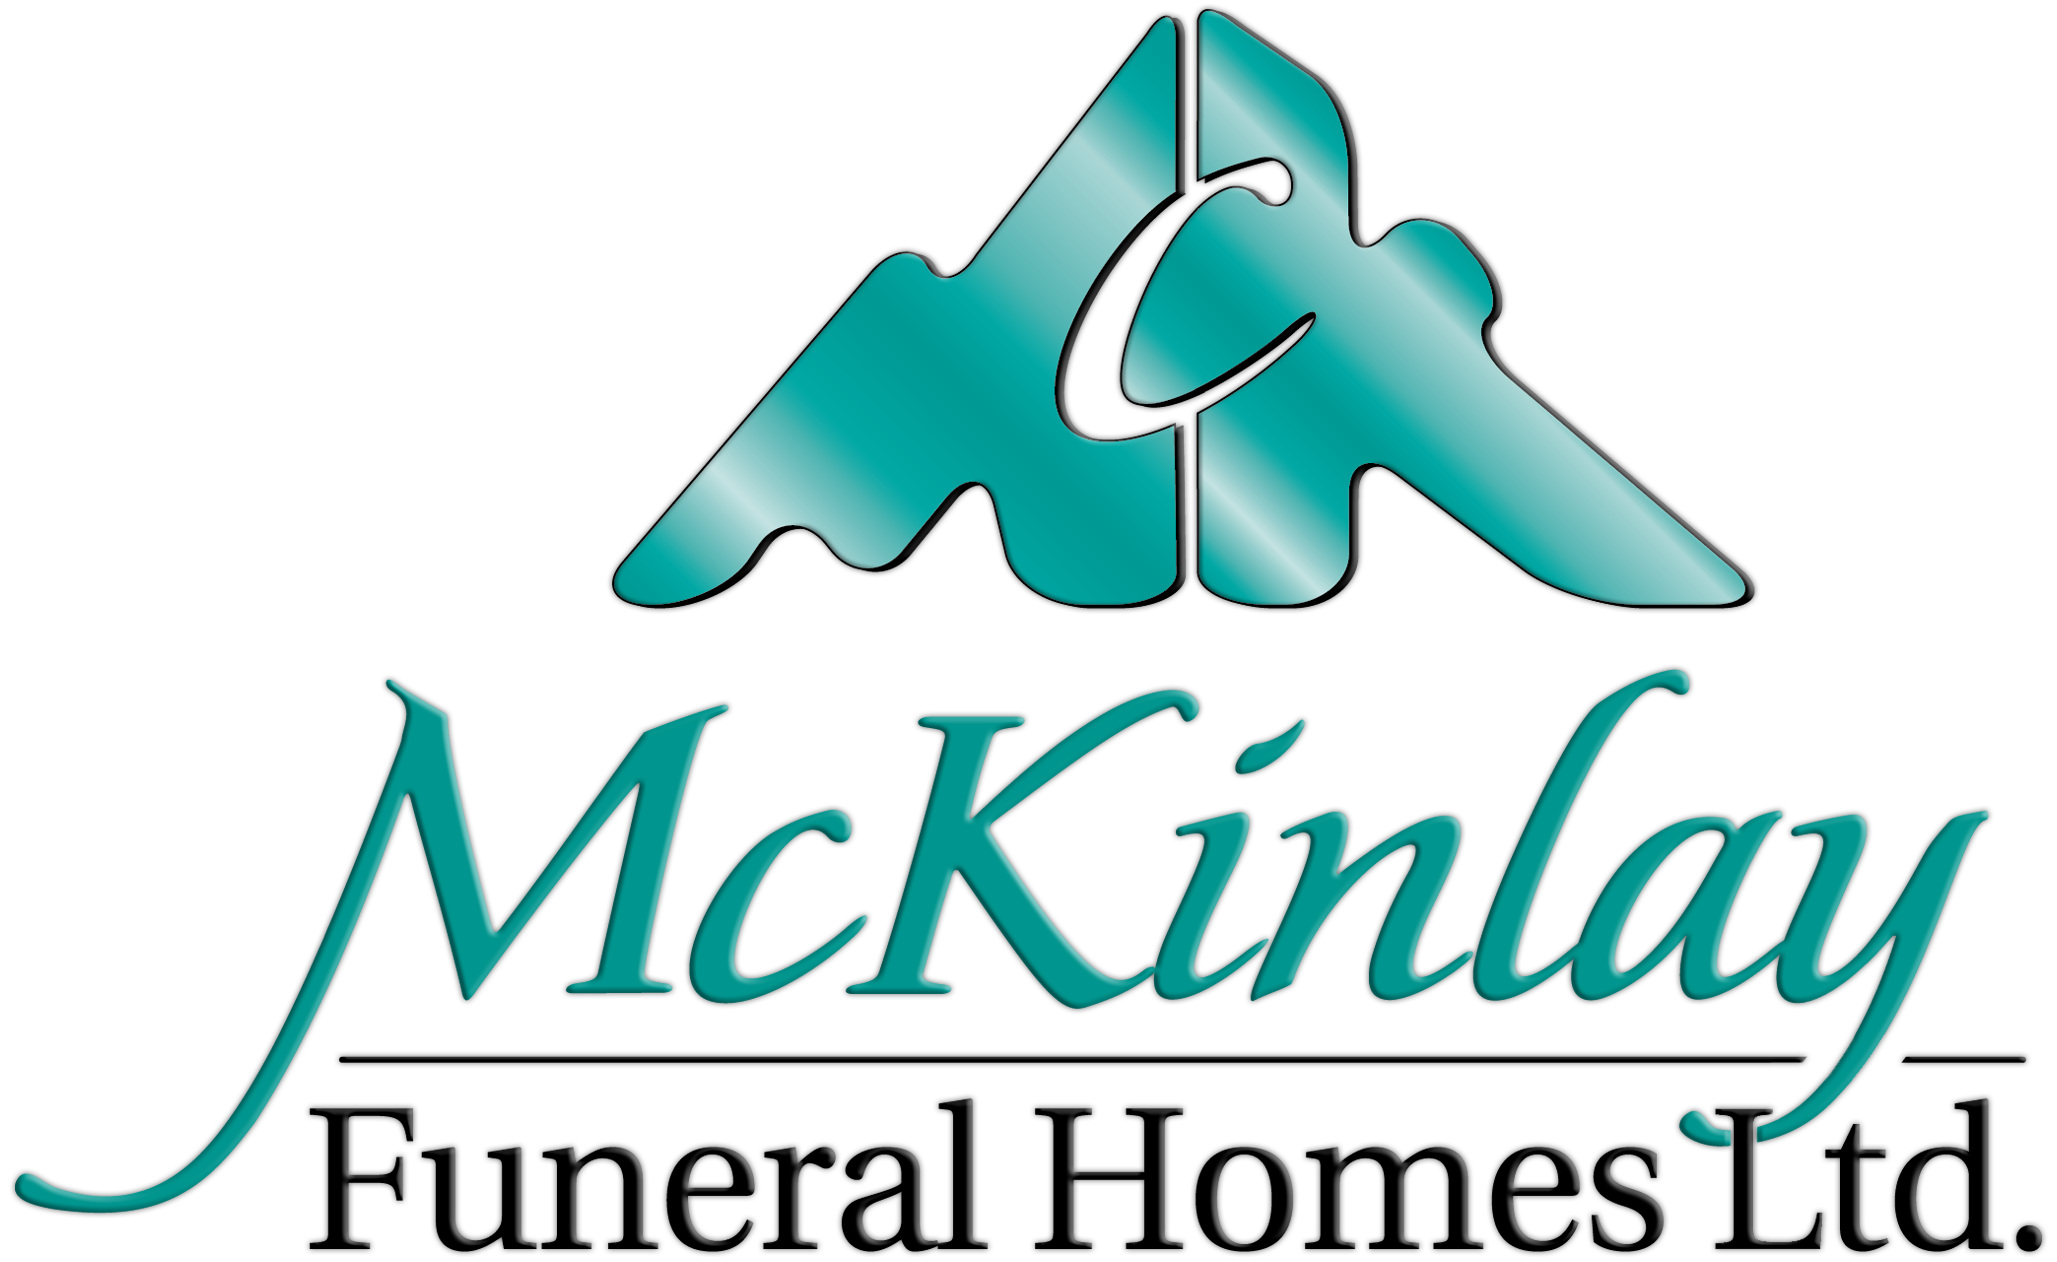 McKinlay Funeral Homes